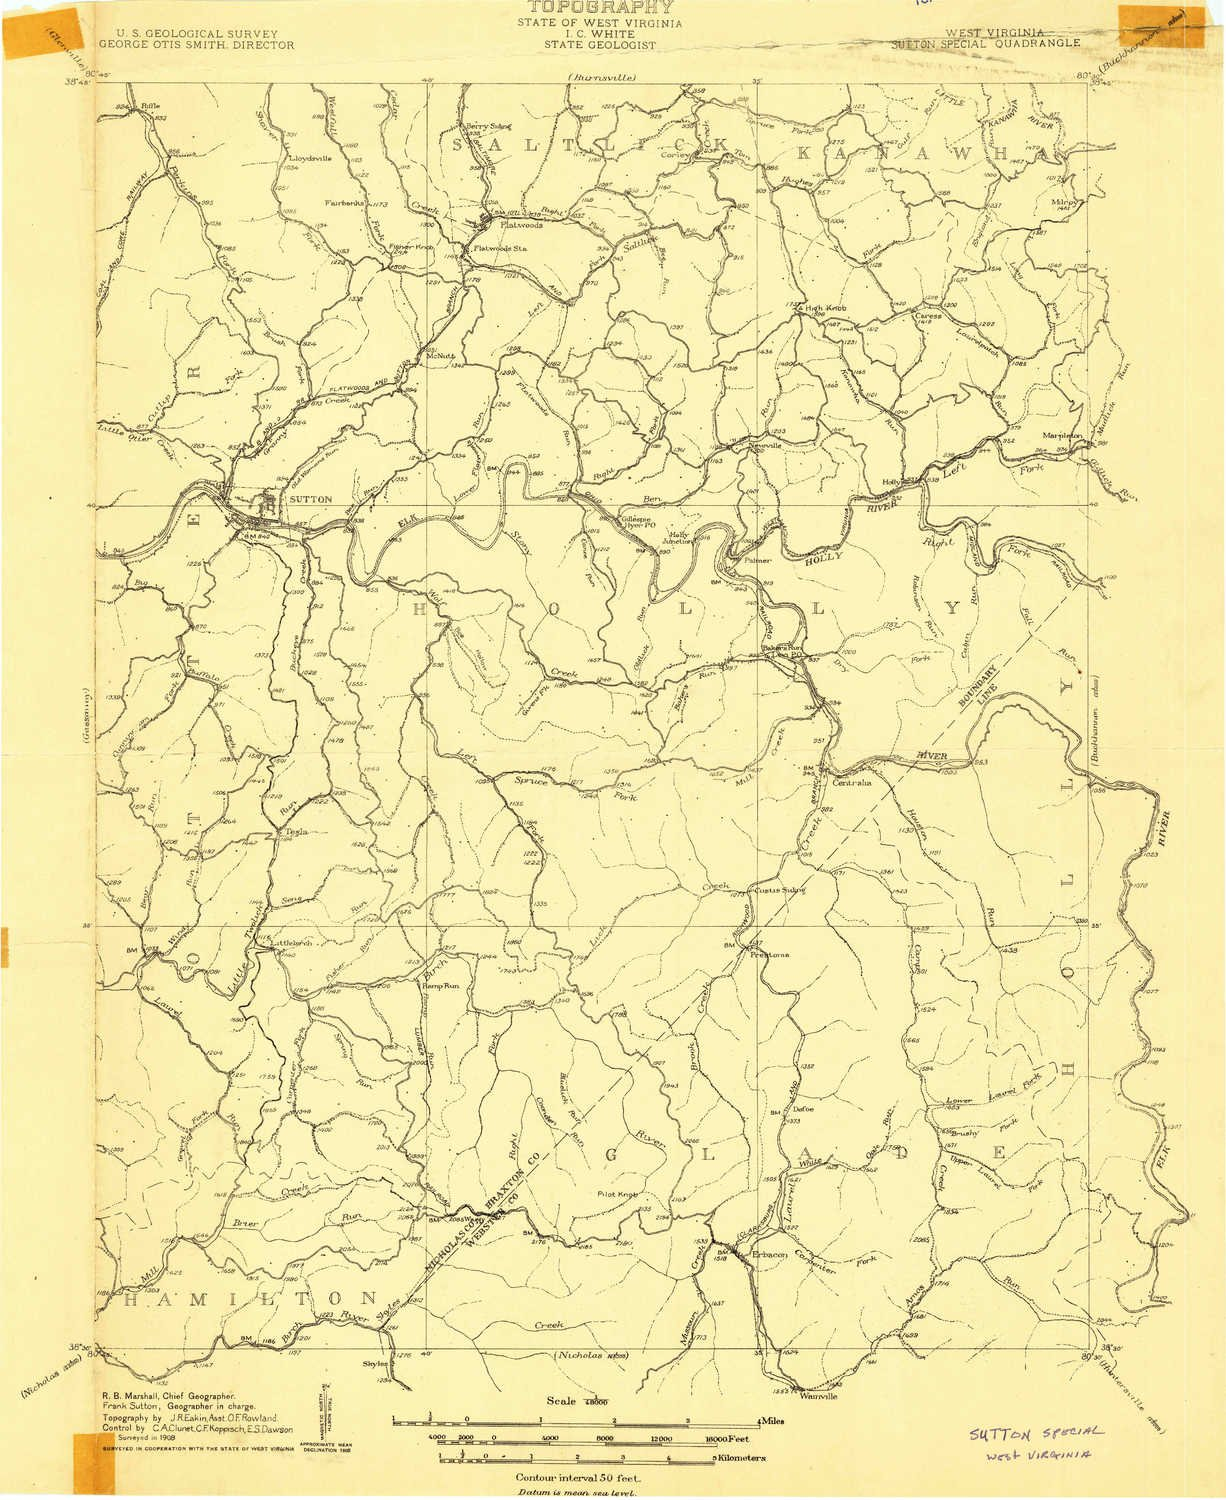 YellowMaps Sutton WV topo map 15 X 15 Minute Historical 1:48000 Scale 27 x 22.1 in 1908